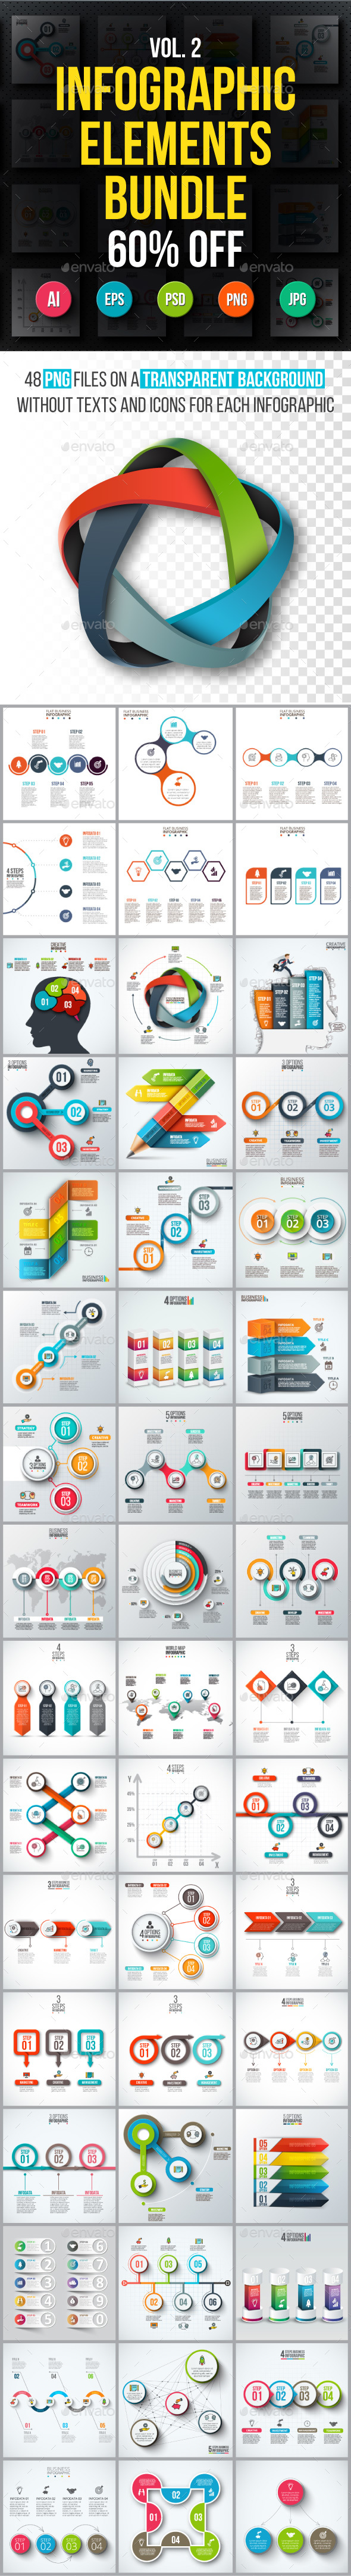 Infographic elements bundle v.02 - Infographics